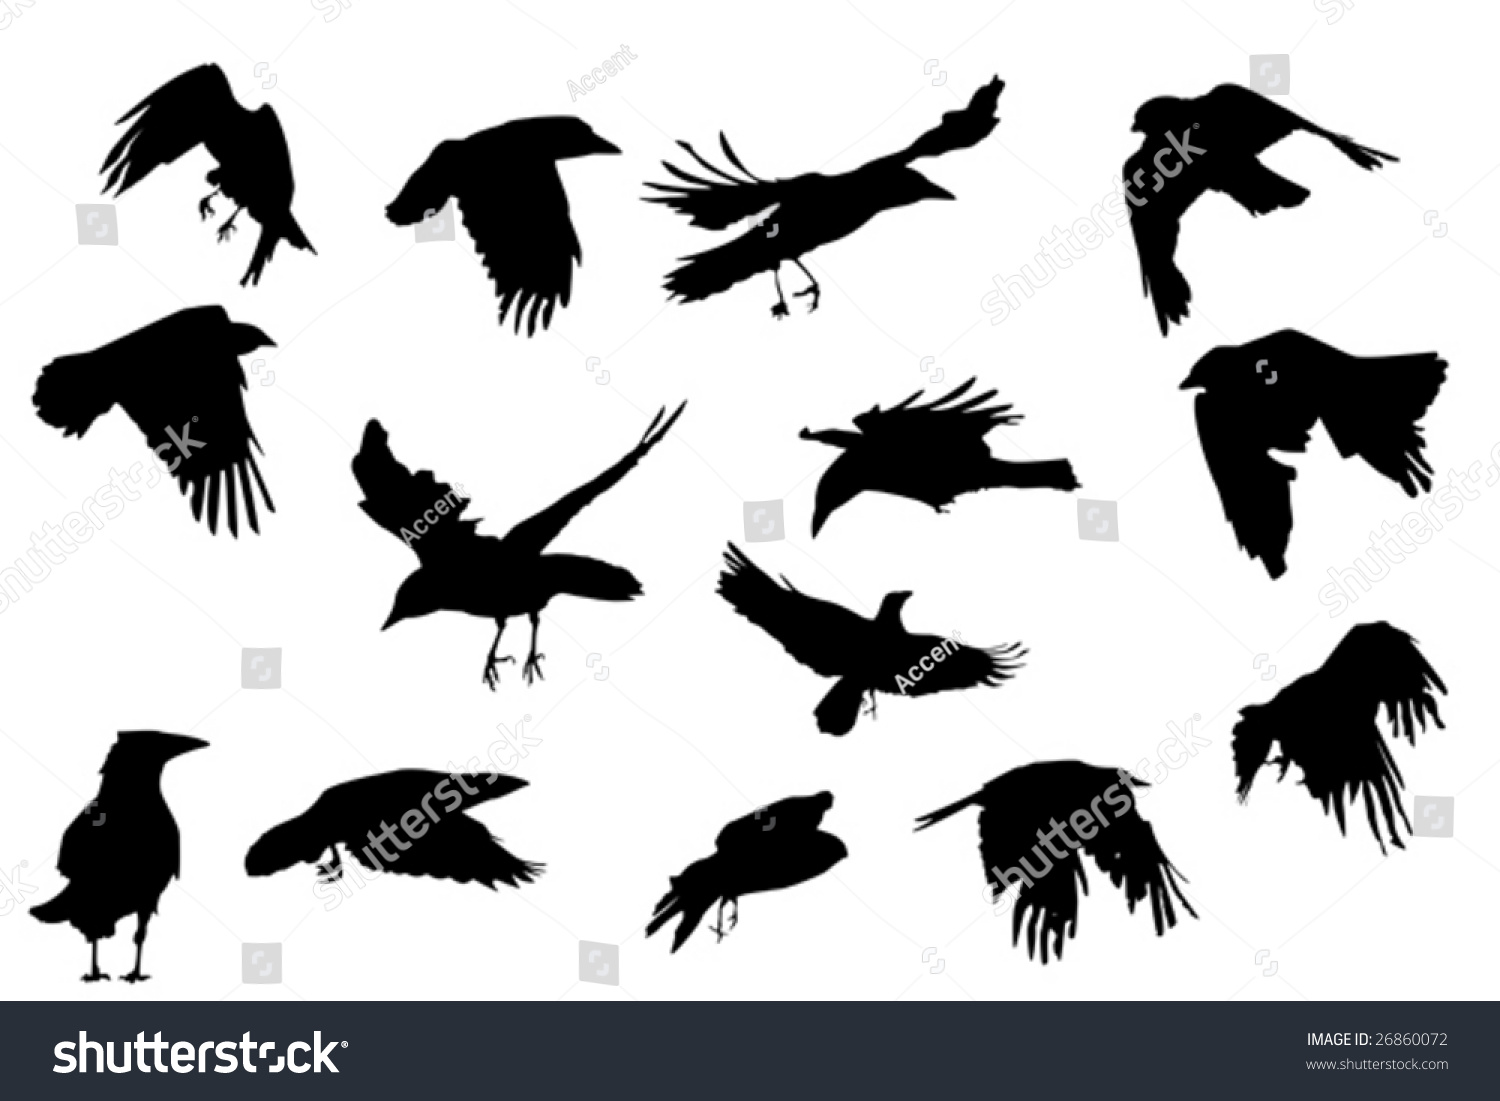 Crows In Flight Silhouette